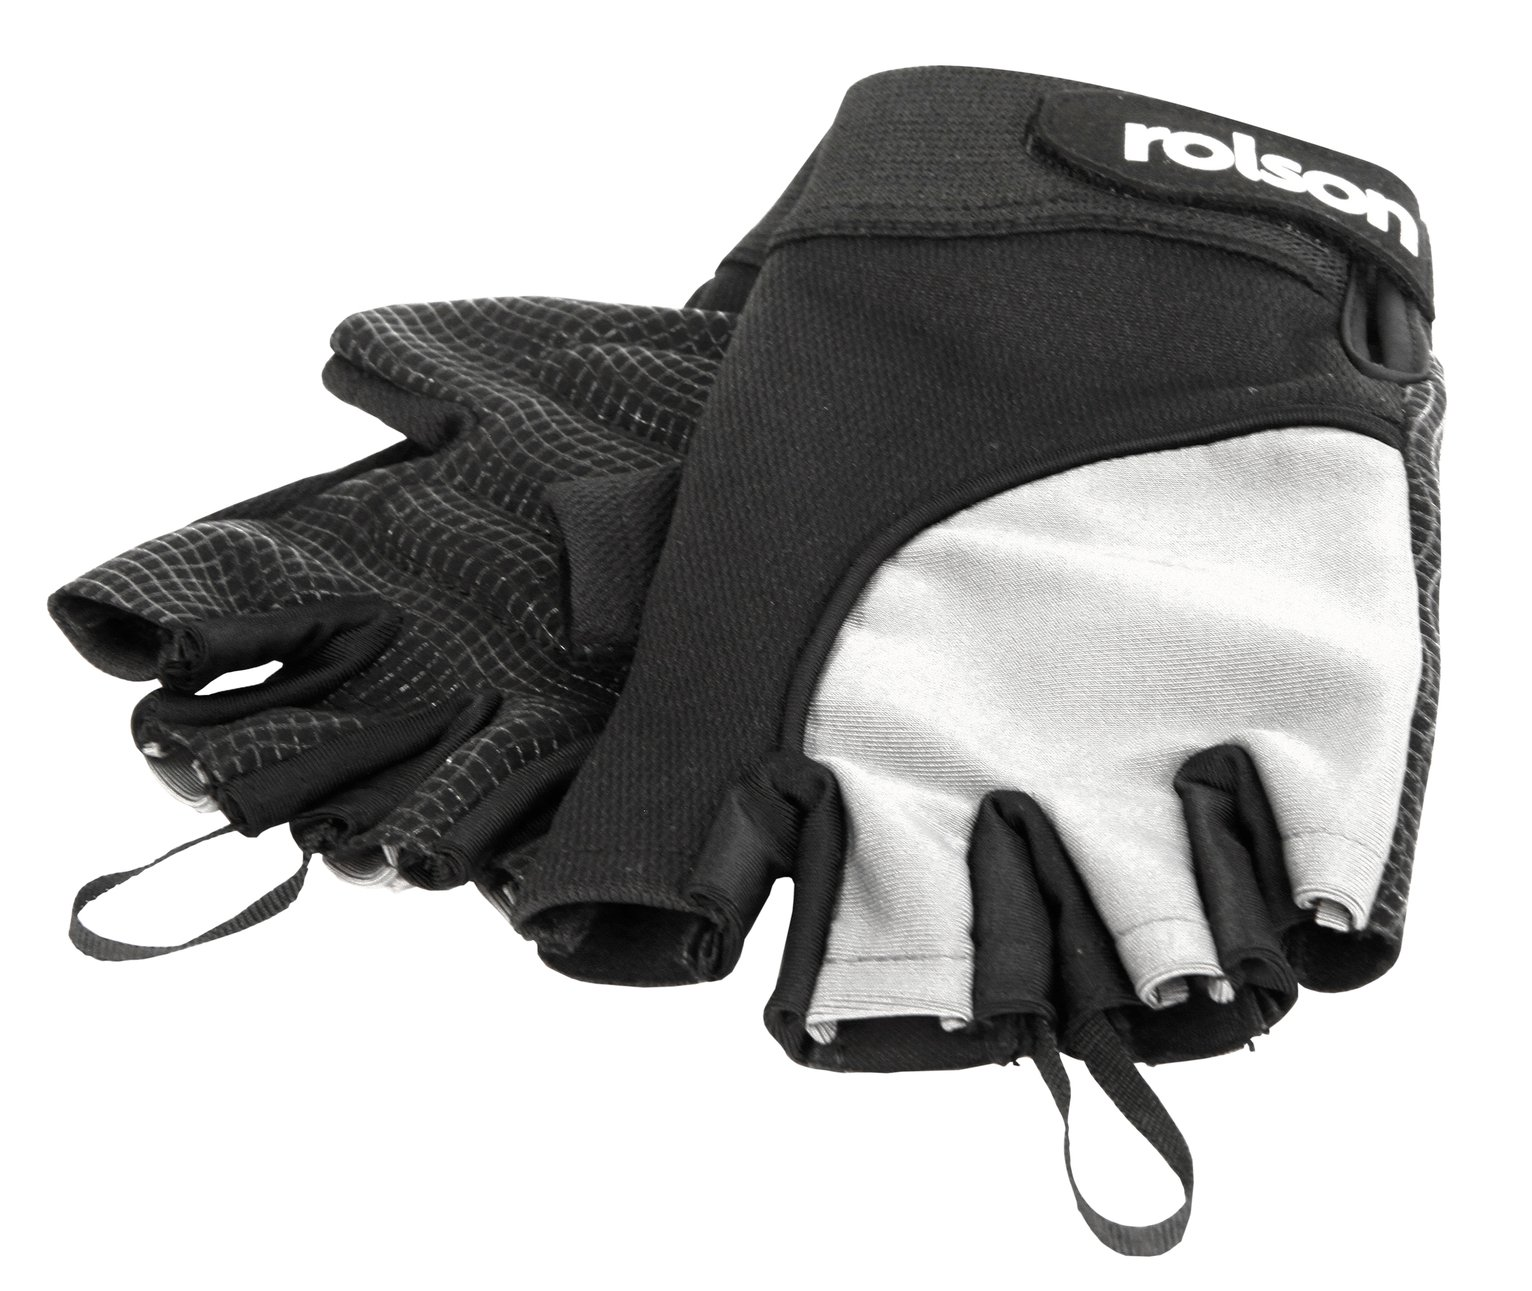 Rolson Fingerless Cycle Gloves